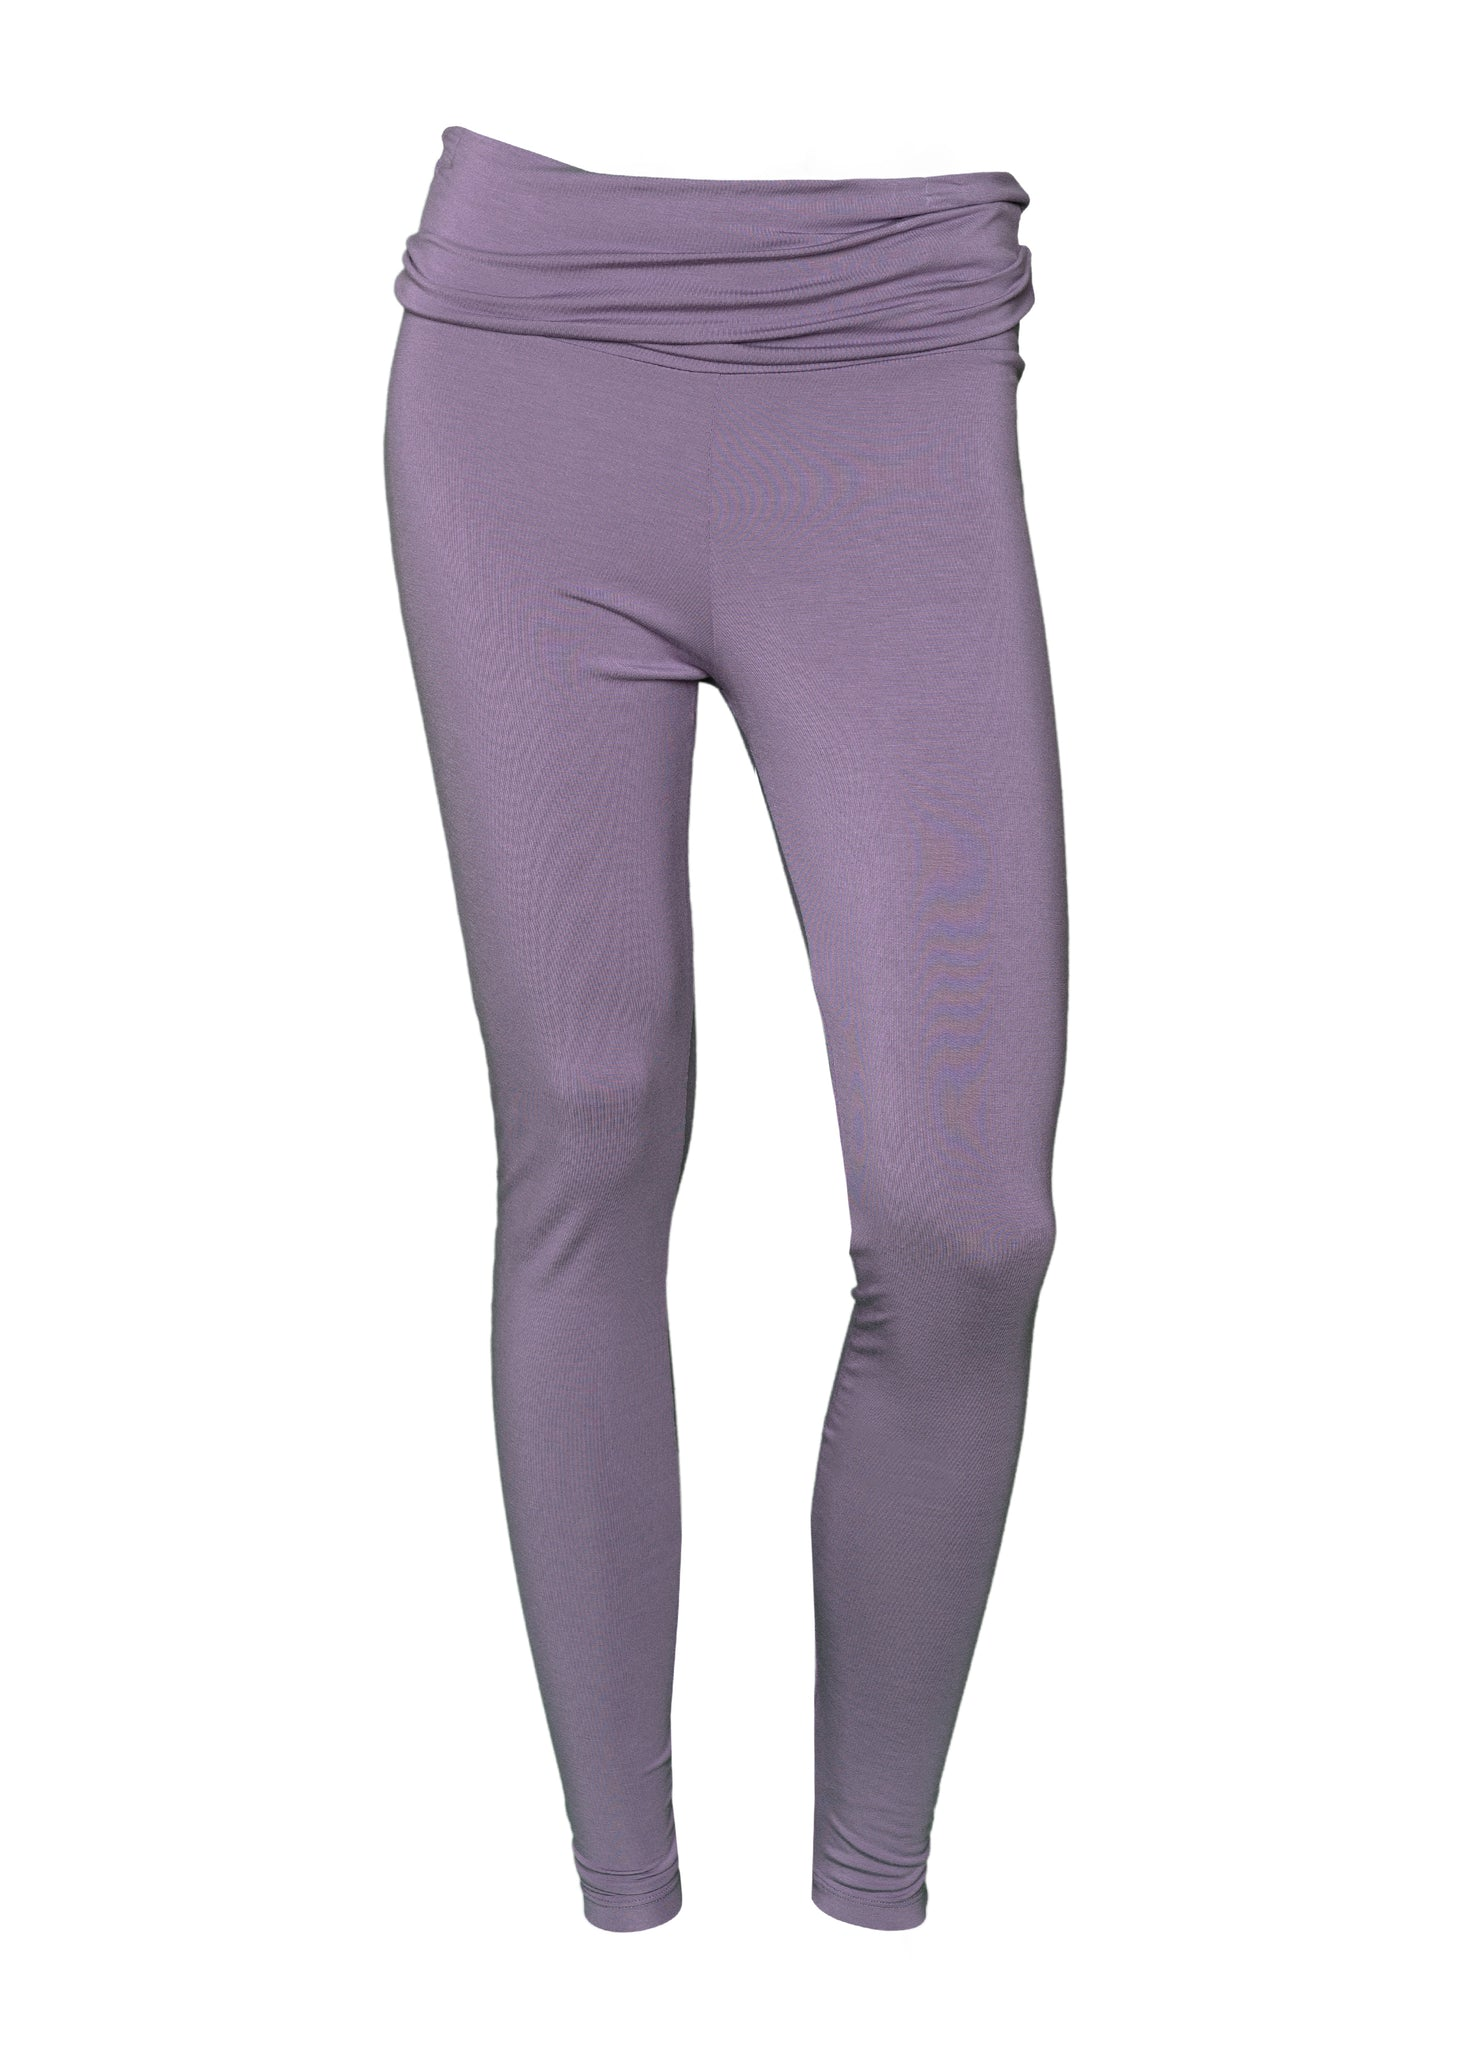 Louis & Louisa YOGA LEGGINGS fliederfarben mit breitem Bund ultraweich